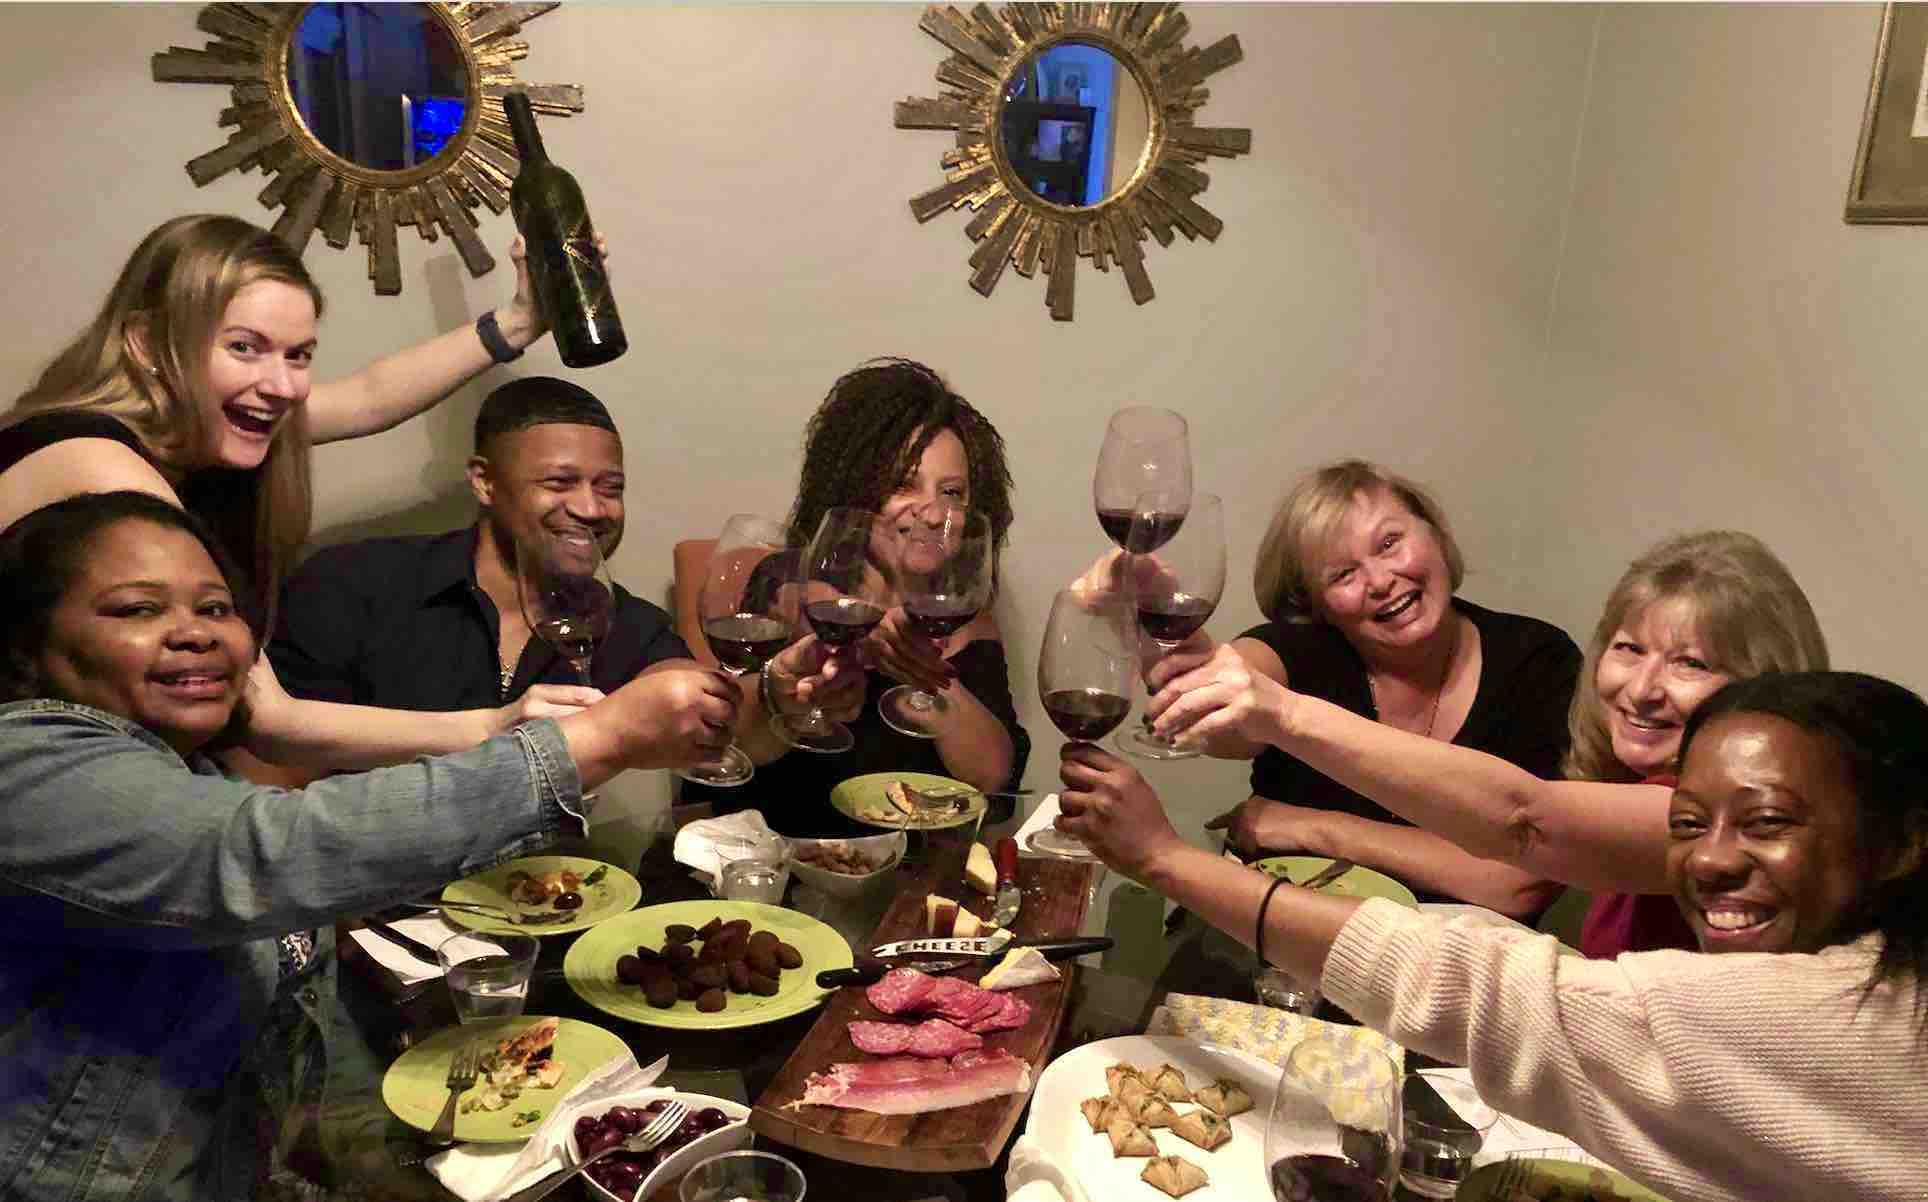 Photo of The Dean Team of Boisset wine ambassadors toasting wine glasses in Southern California. We help you start a wine business, earn extra money via great commissions and enjoy many perks like luxury trips to France, bonuses and prizes.